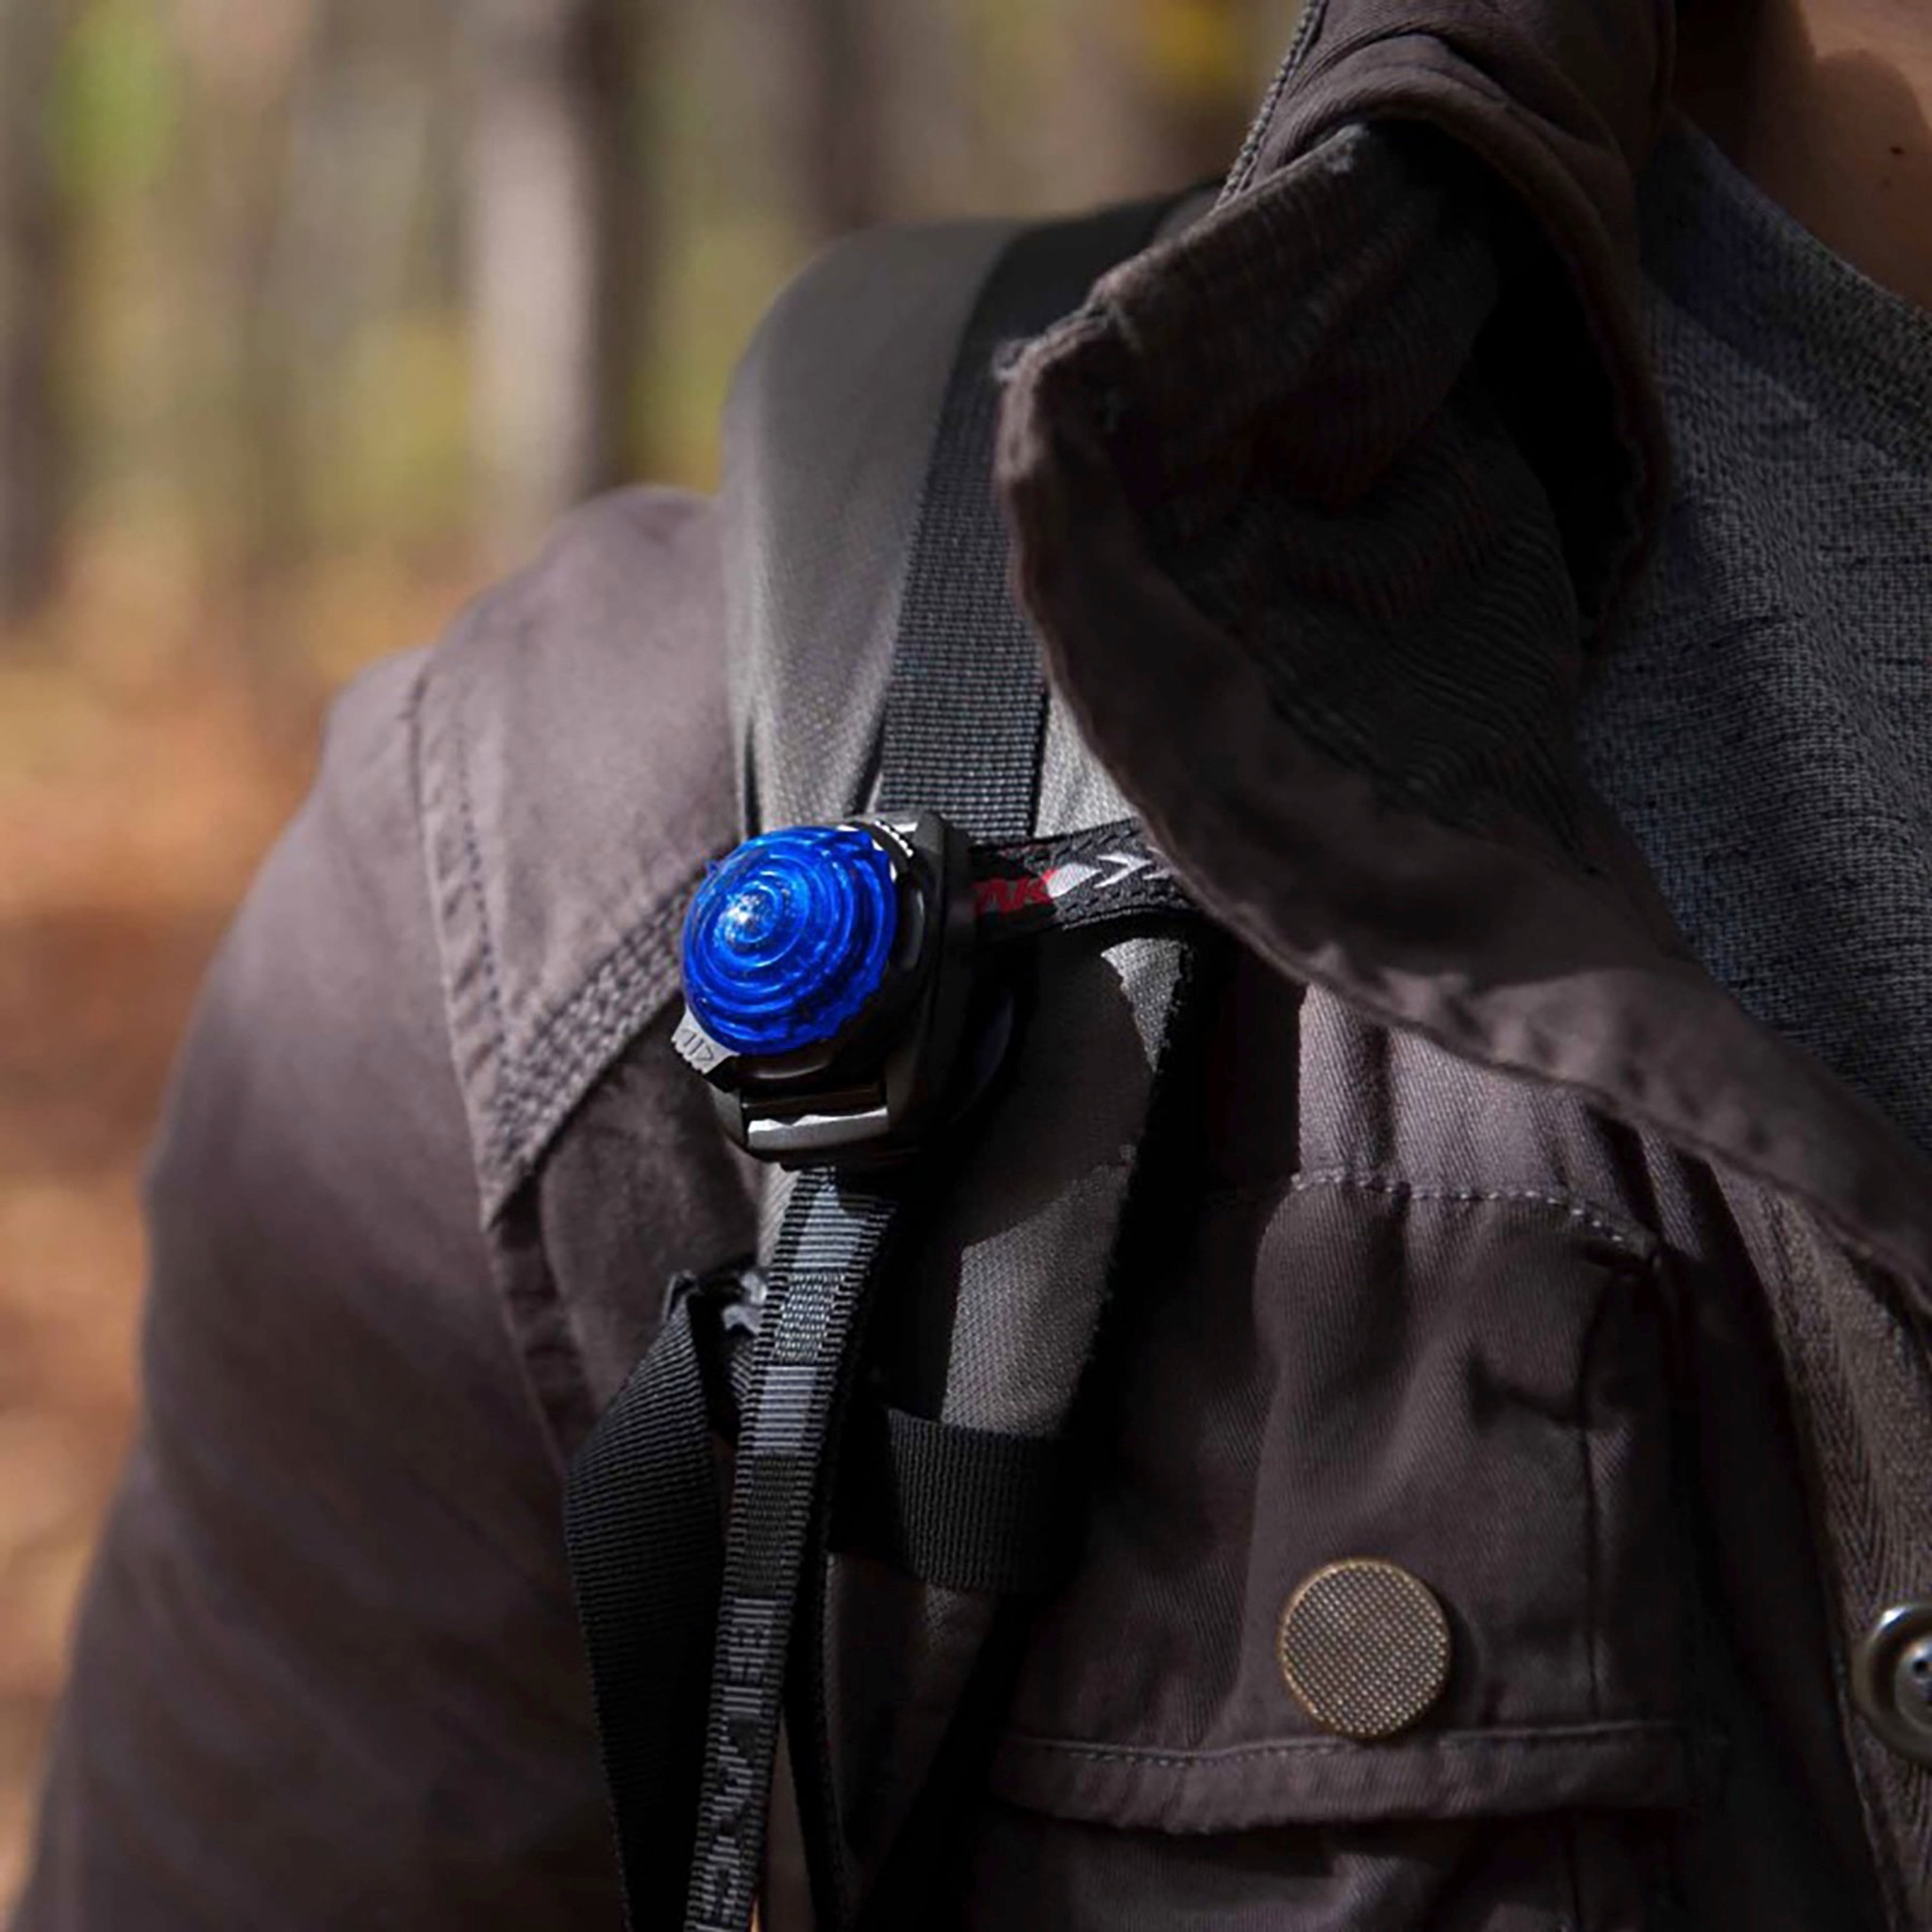 ADVENTURE LIGHTS GUARDIAN EXPEDITION LIGHT CAMPING SAFETY BELT CLIP FLASH BLUE